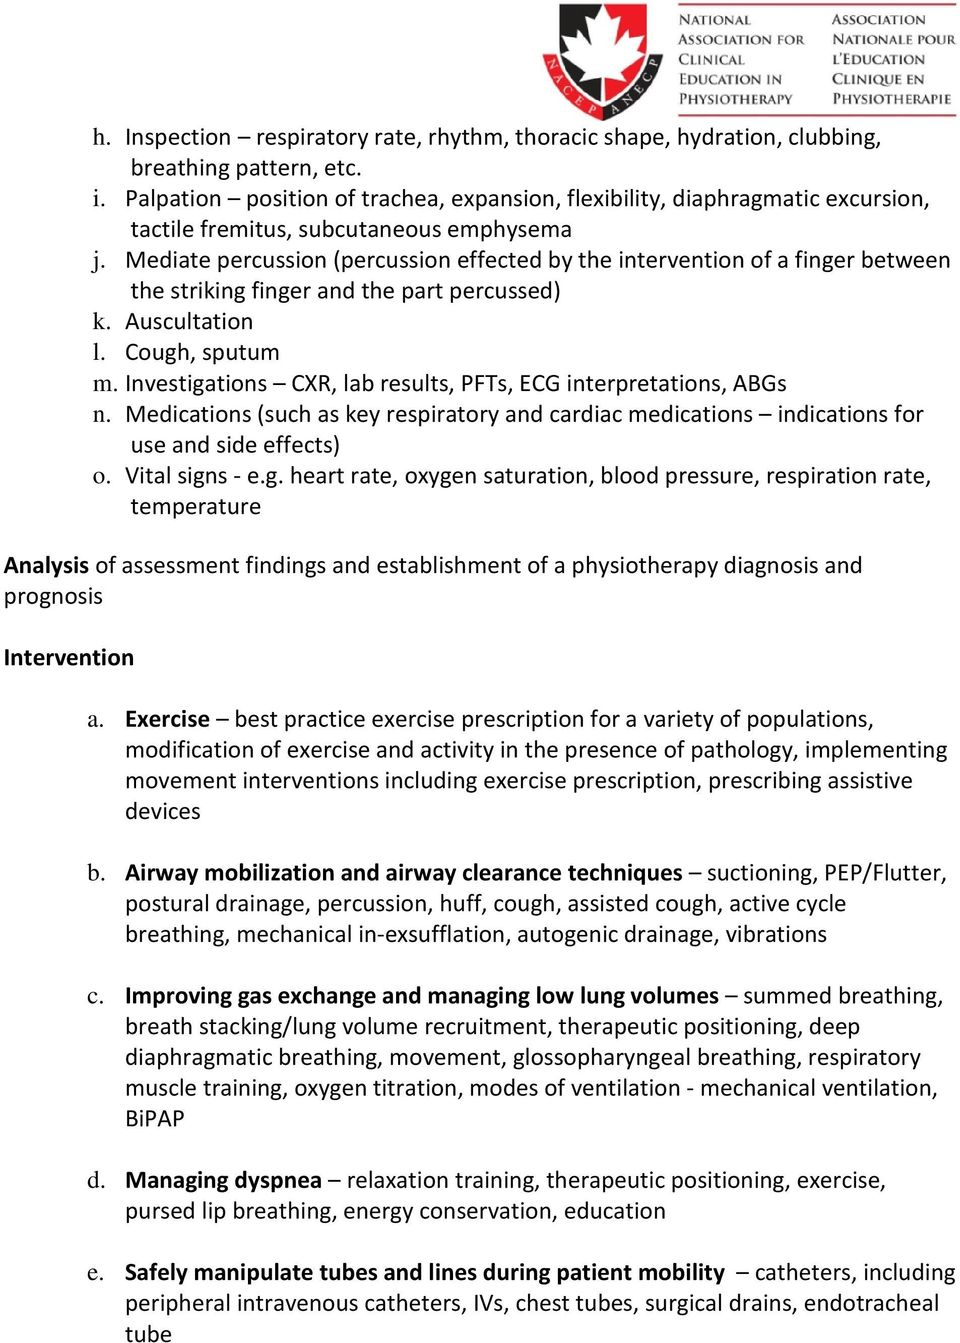 A Checklist of Key Cardio-Respiratory Interventions for Entry-Level